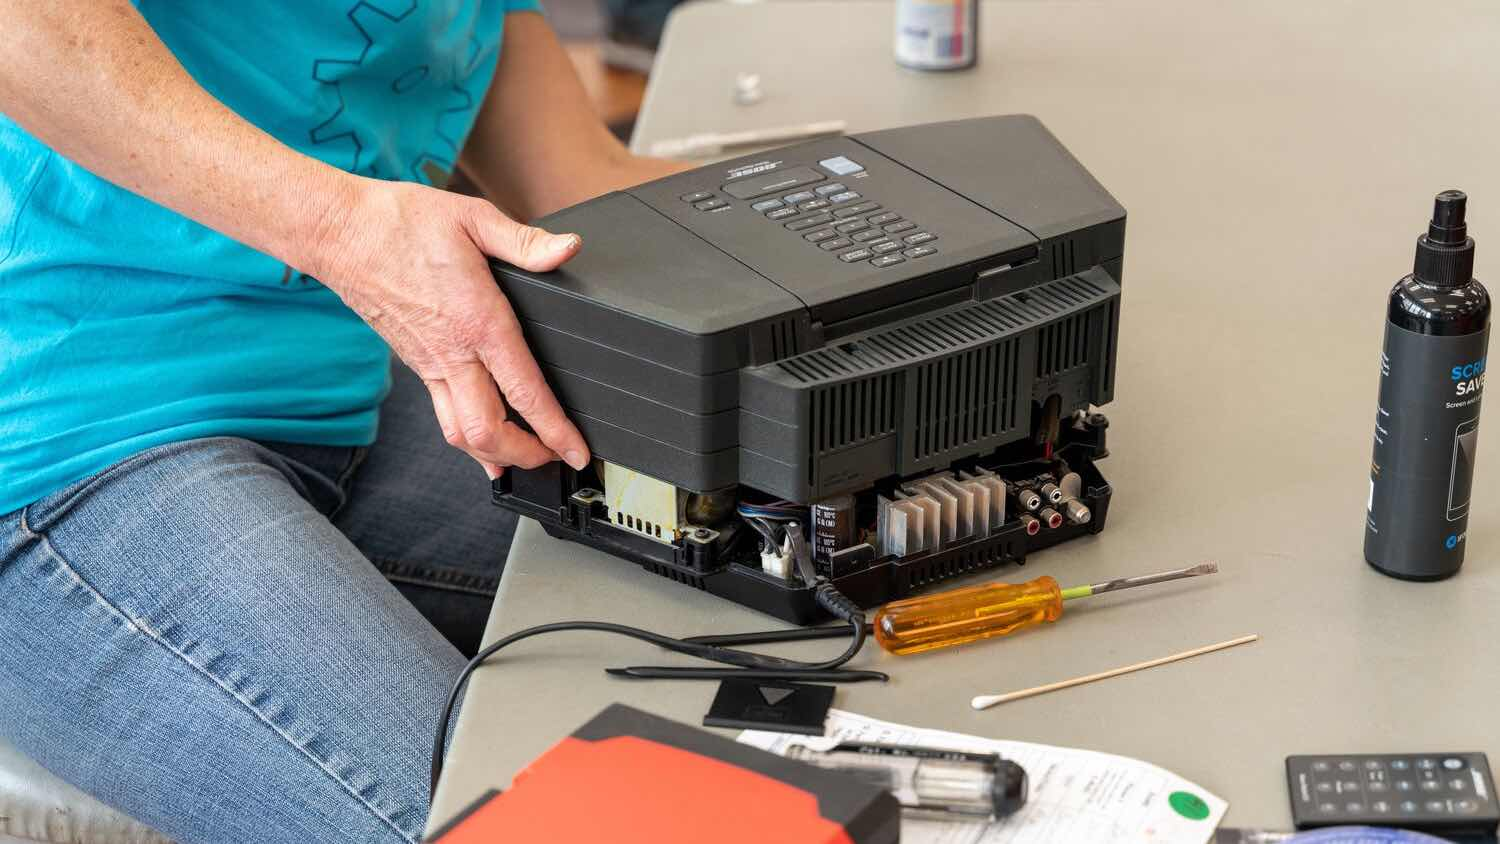 Repairing a speaker during a repair cafe